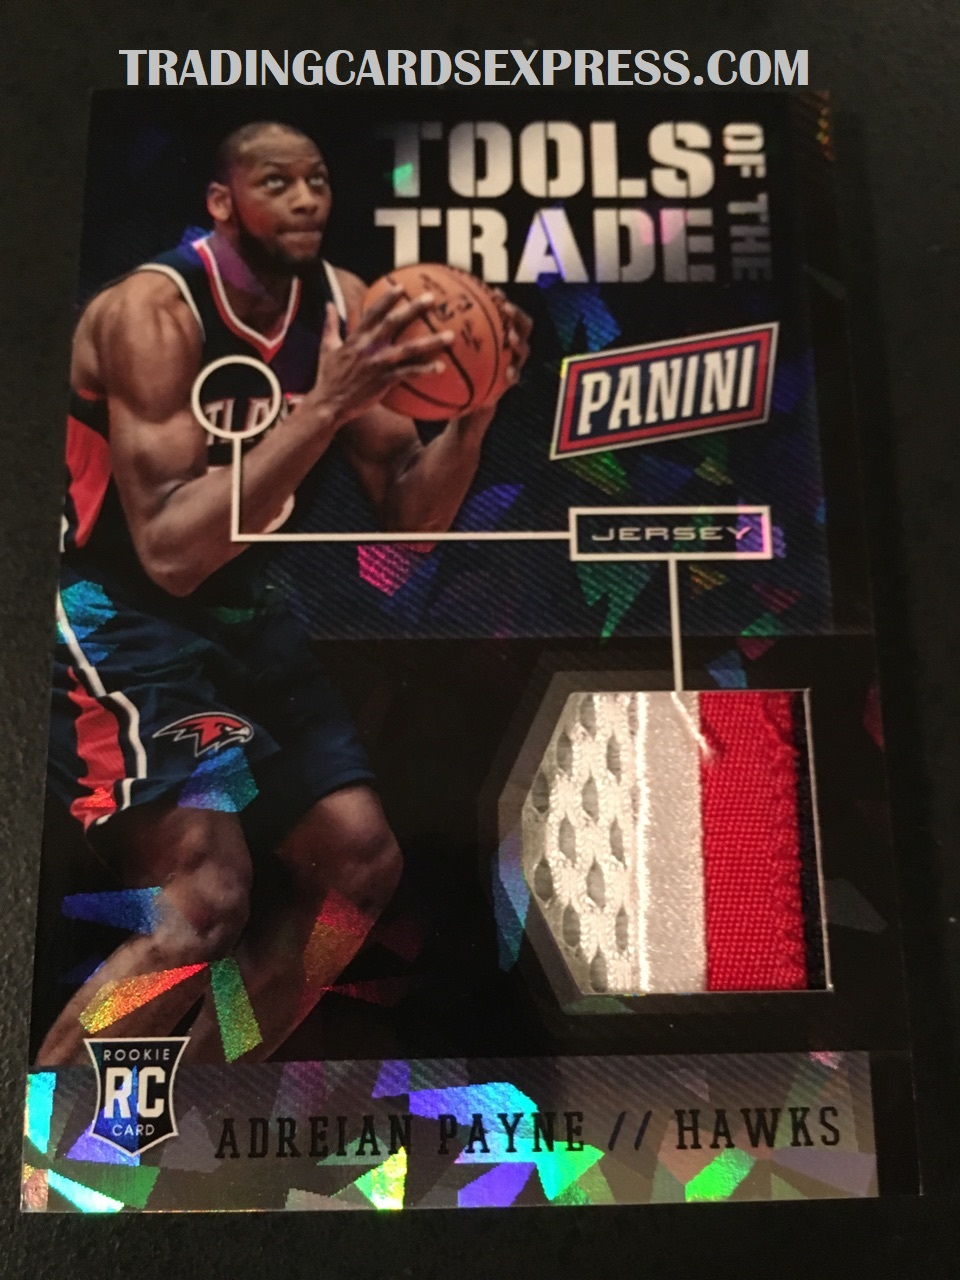 Adreian Payne Hawks 2014 Panini Boxing Day Tools Of The Trade Jersey Card 9